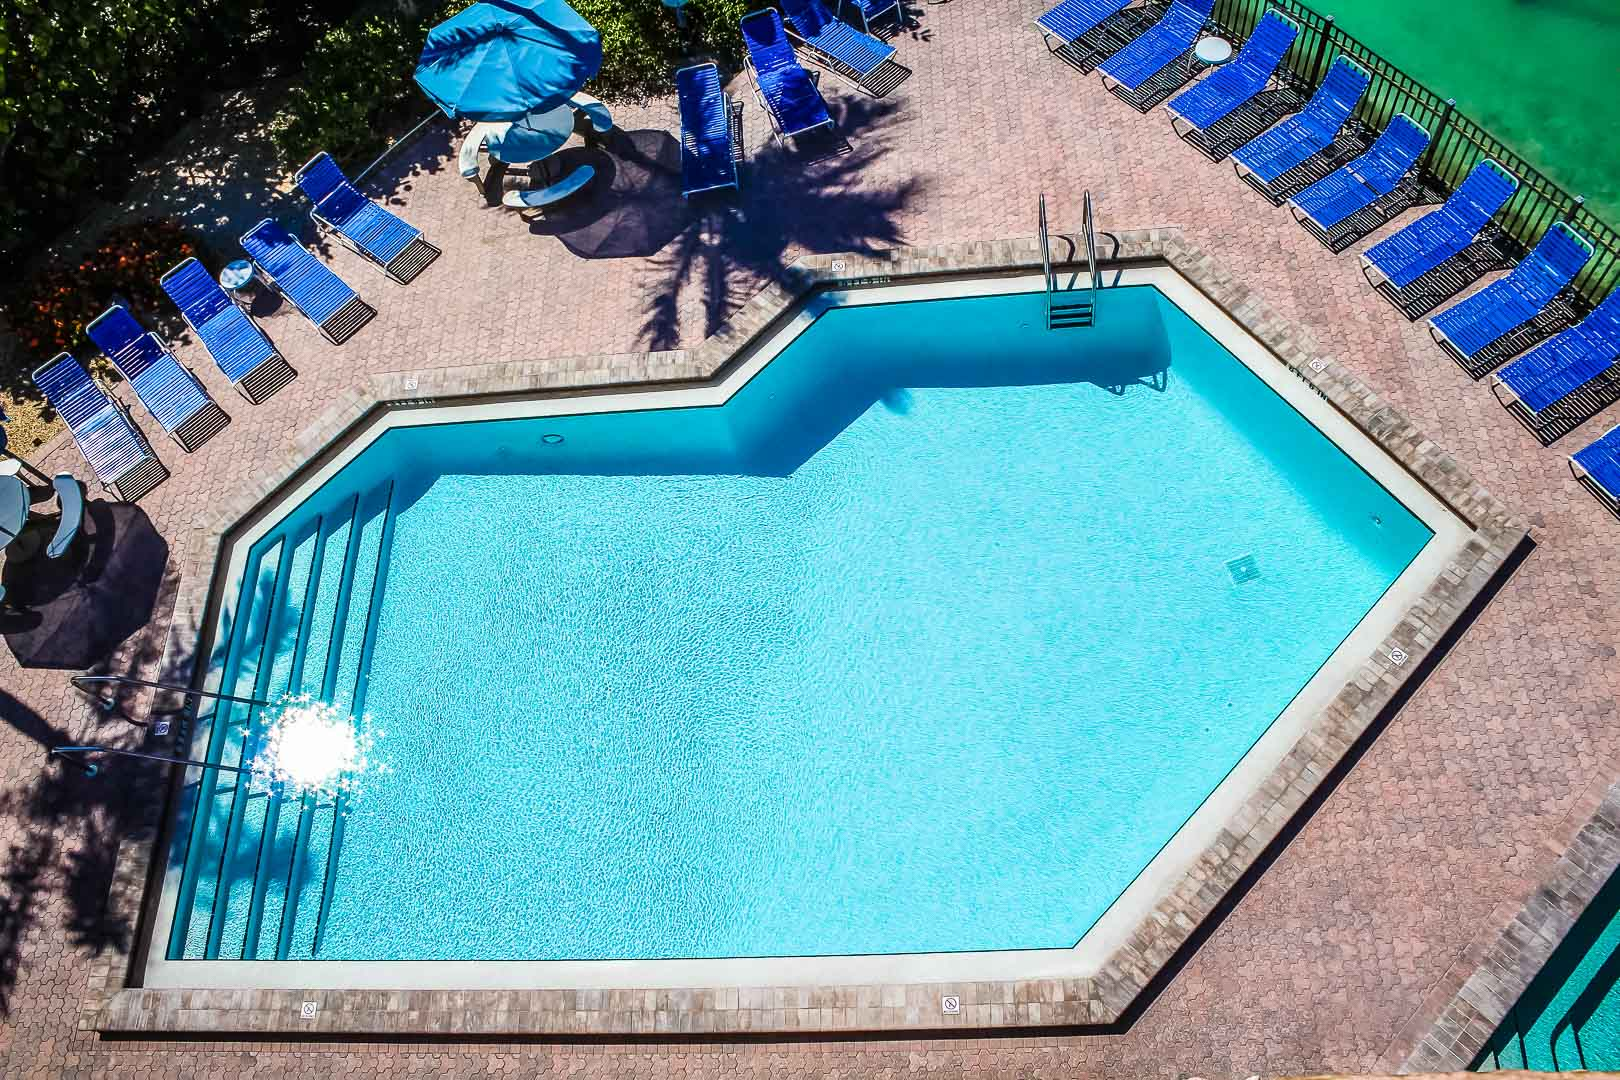 A spacious outdoor swimming pool at VRI's Bonita Resort and Club in Florida.